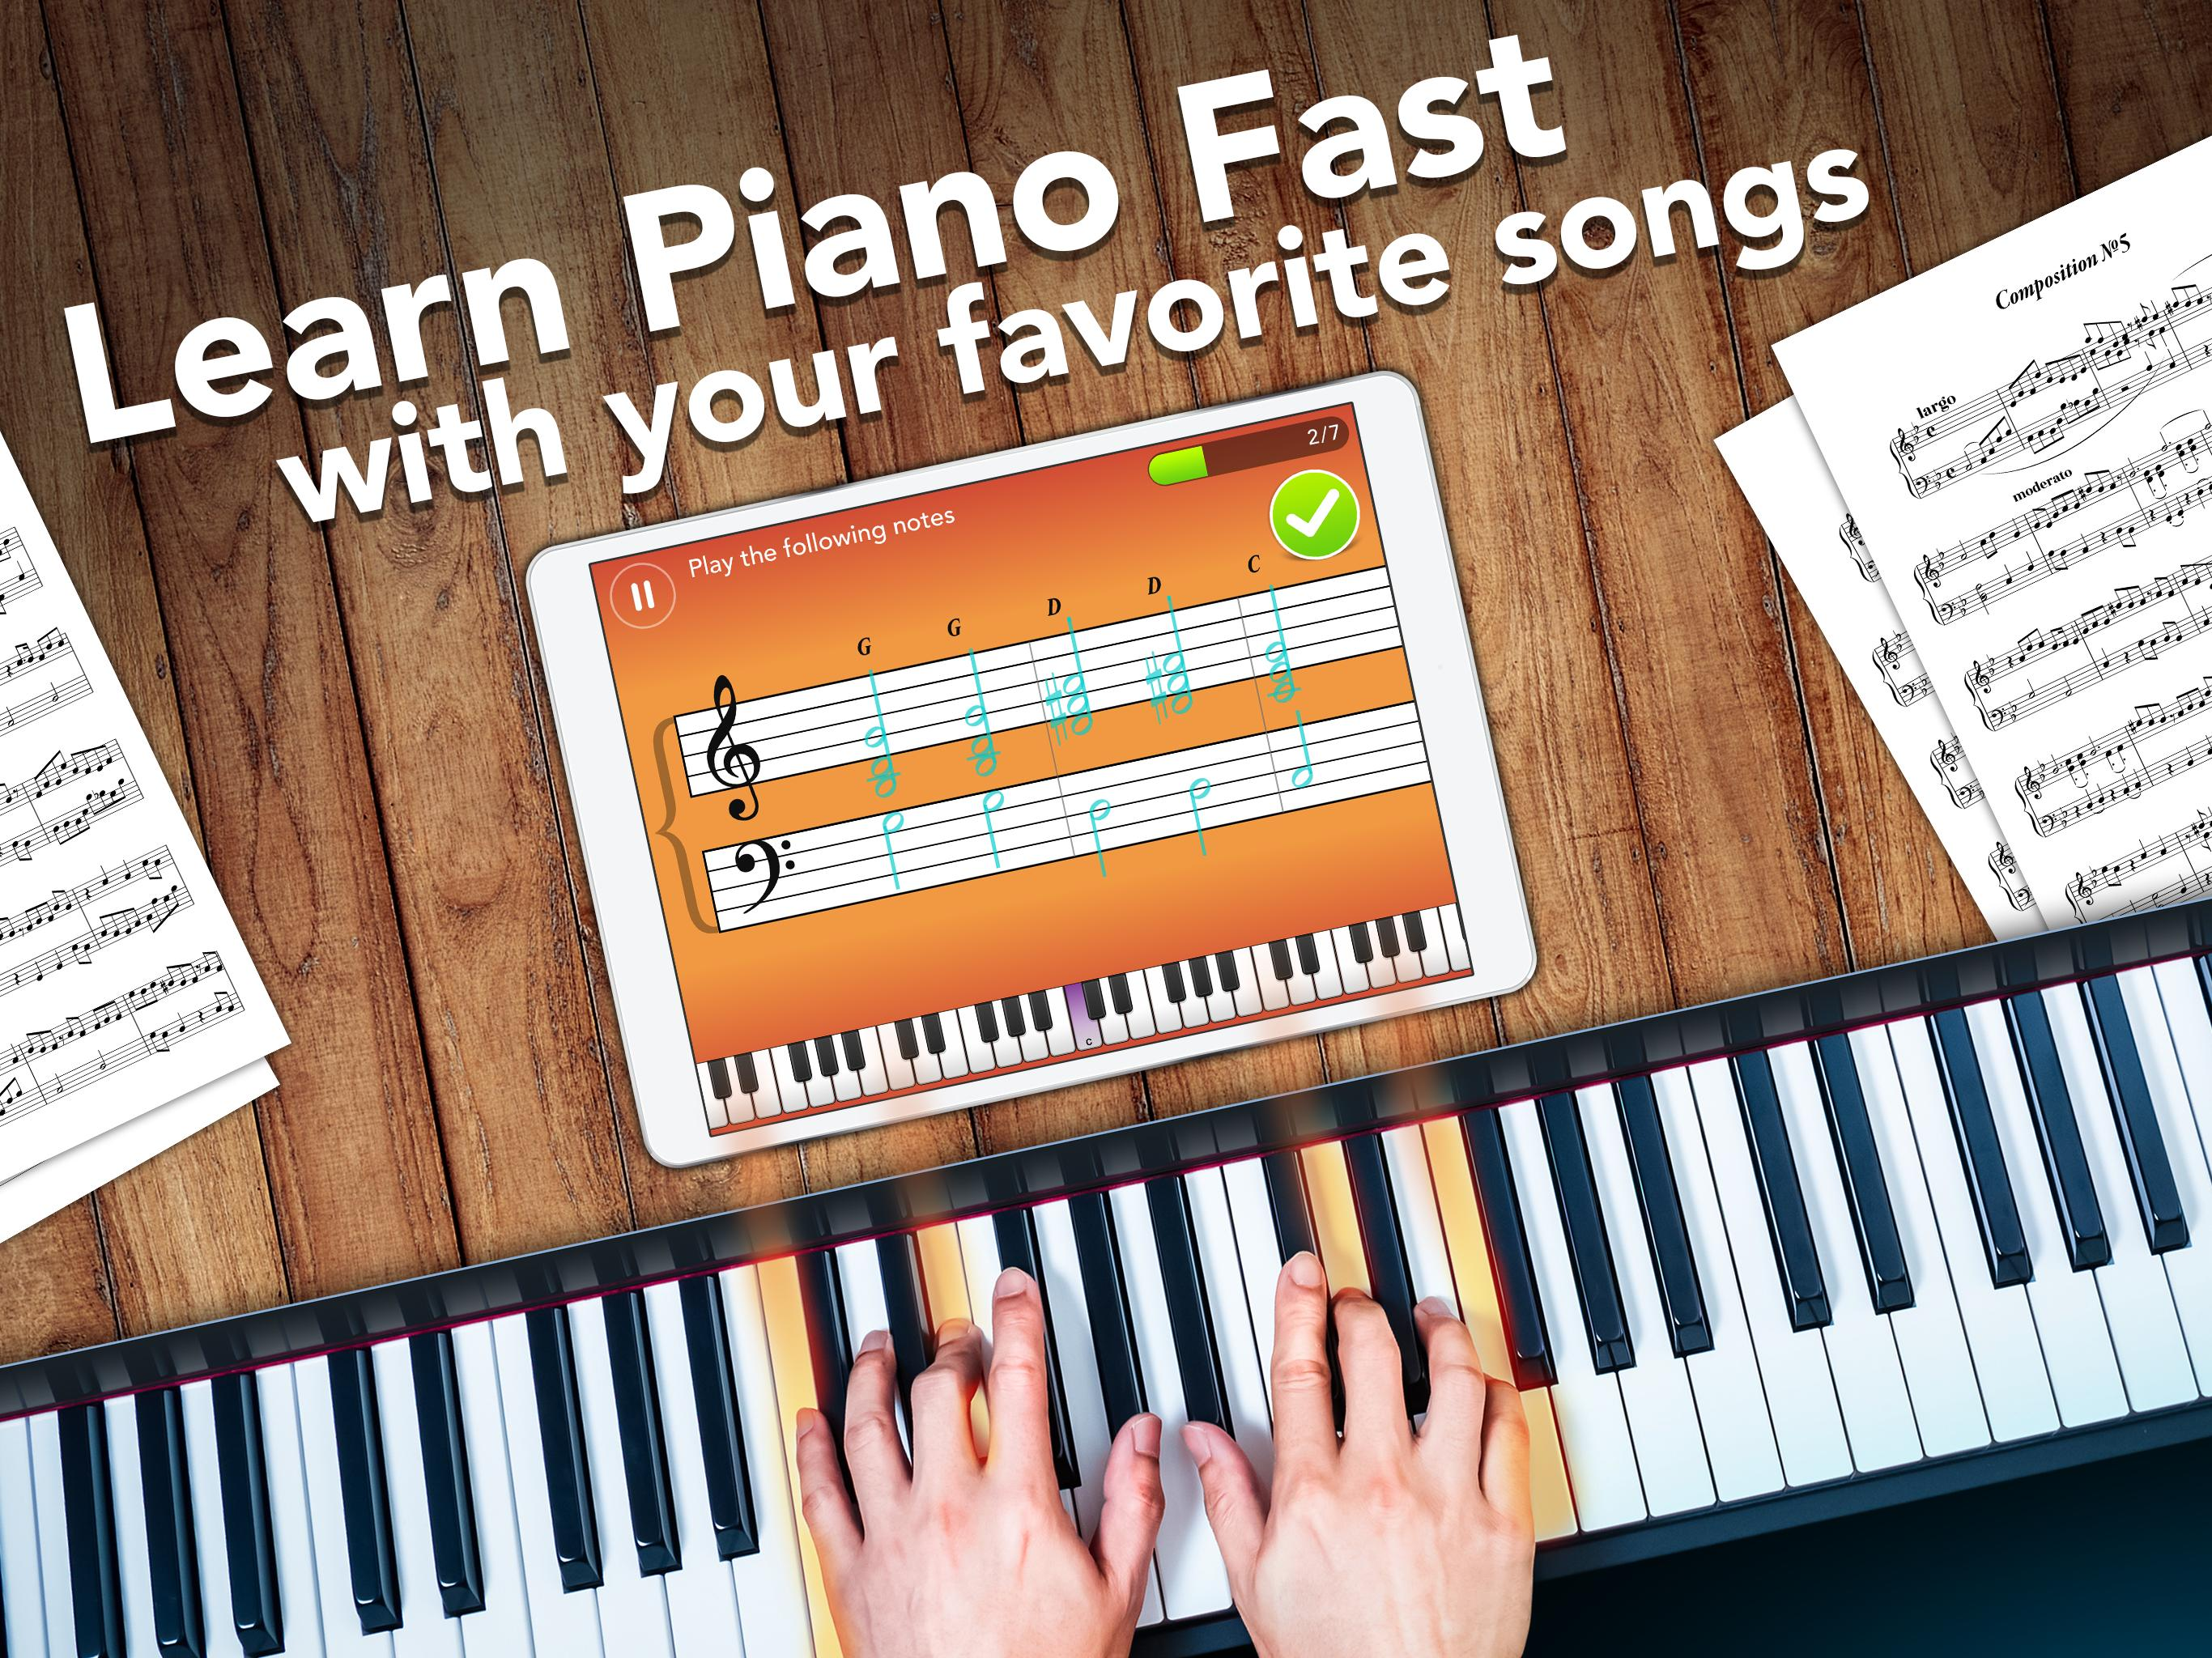 Simply Piano by JoyTunes for Android - APK Download